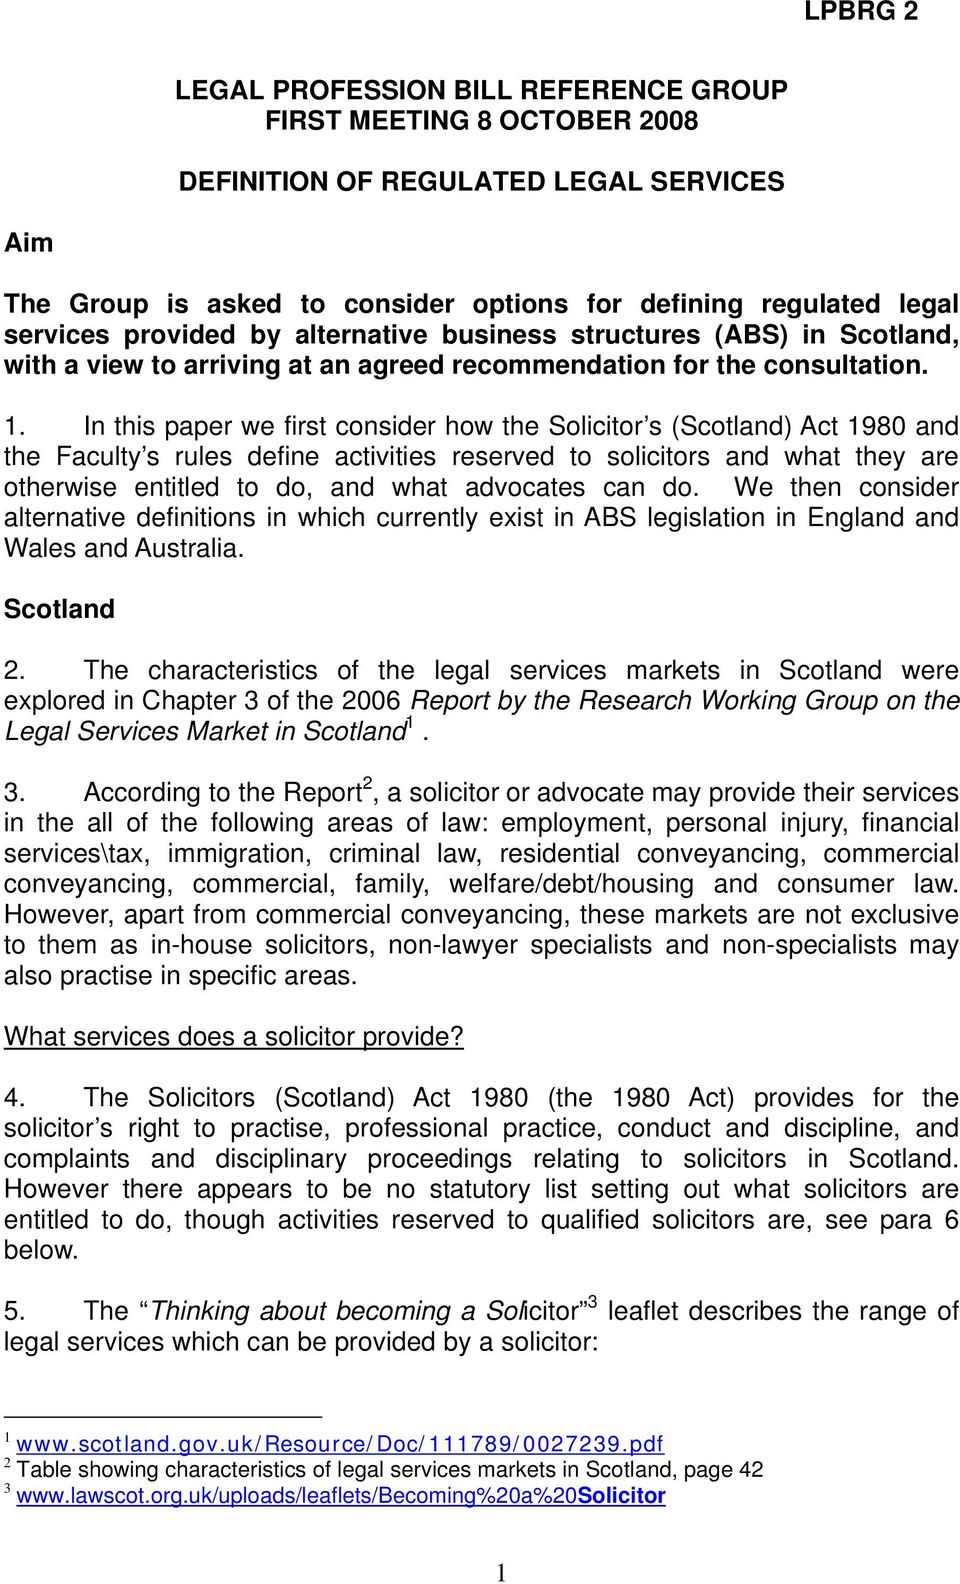 In this paper we first consider how the Solicitor s (Scotland) Act 1980 and the Faculty s rules define activities reserved to solicitors and what they are otherwise entitled to do, and what advocates